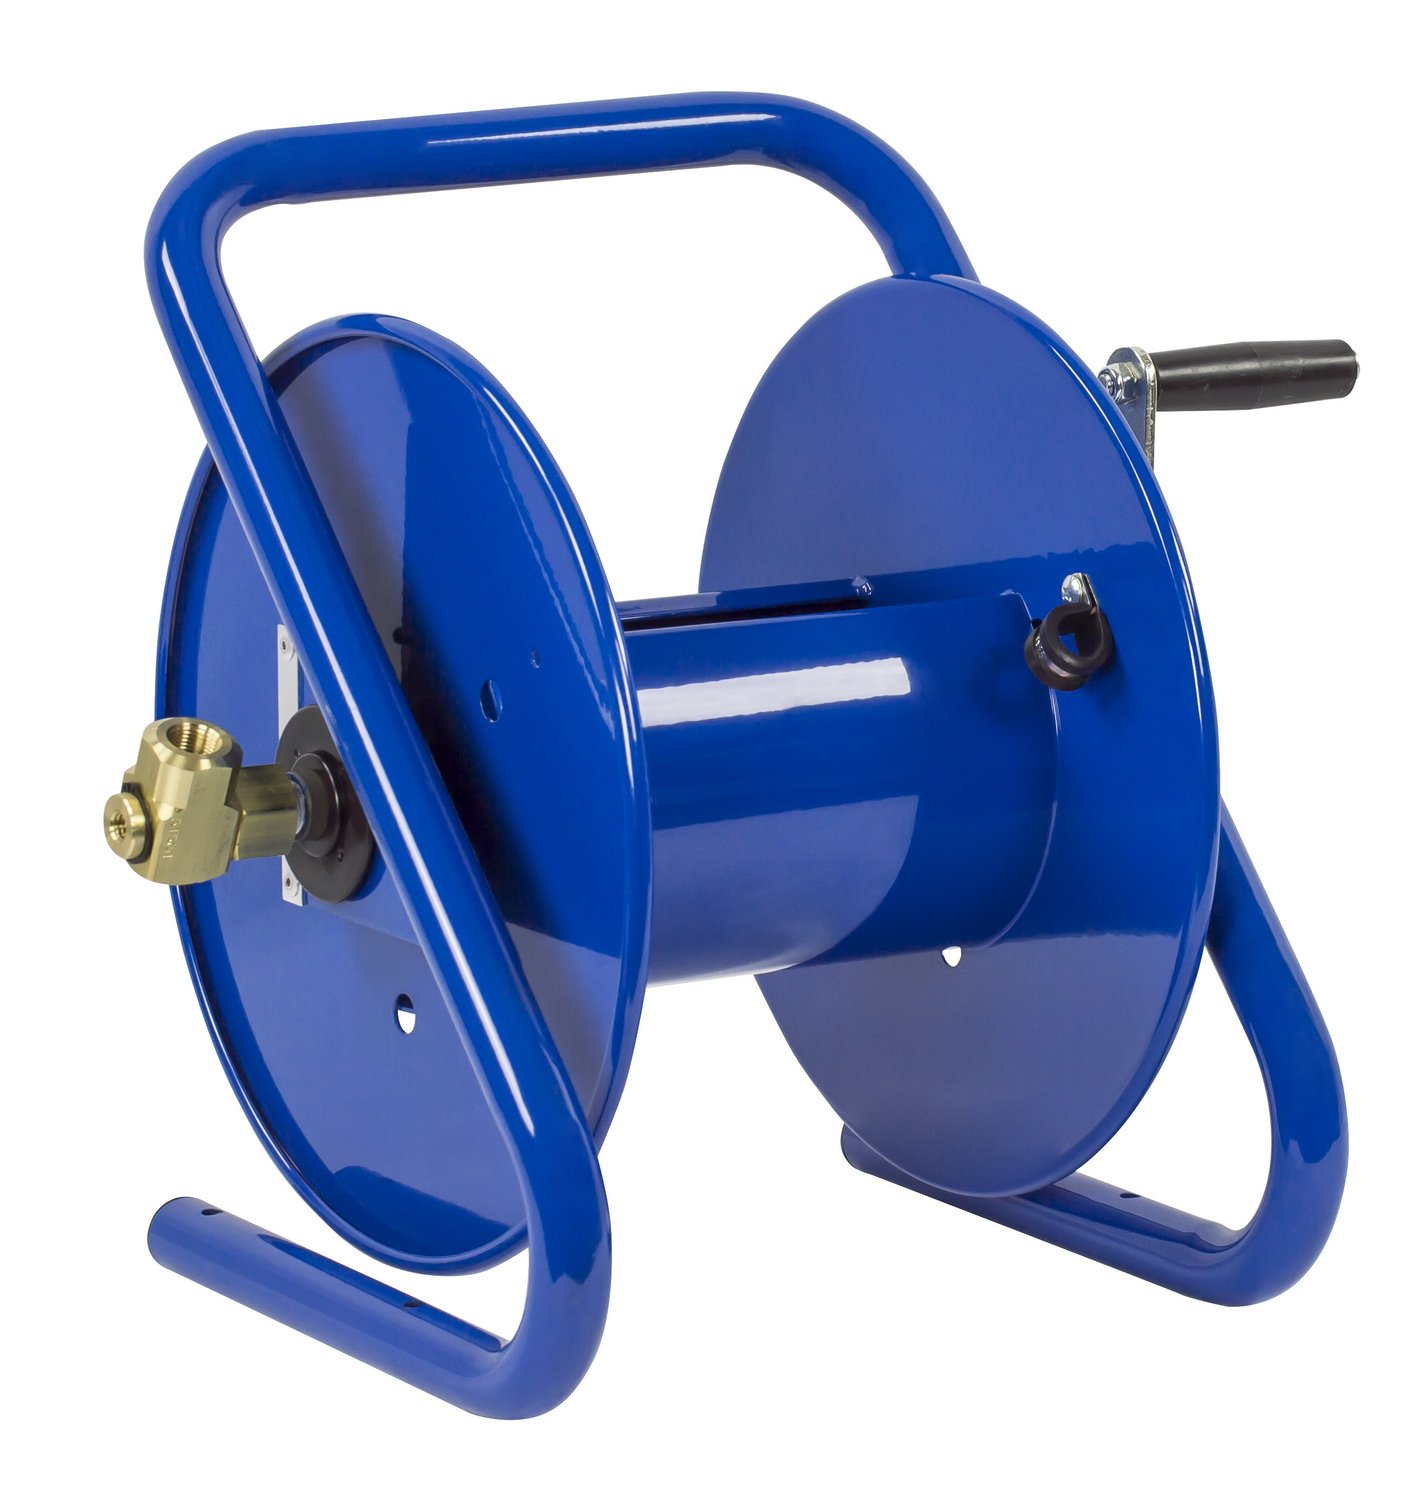 Holds 3//8 x 150 Length Hose Coxreels 112-3-150-CM Caddy-Mount Portable Hose Reel 4,000 PSI Hose Not Included,Blue